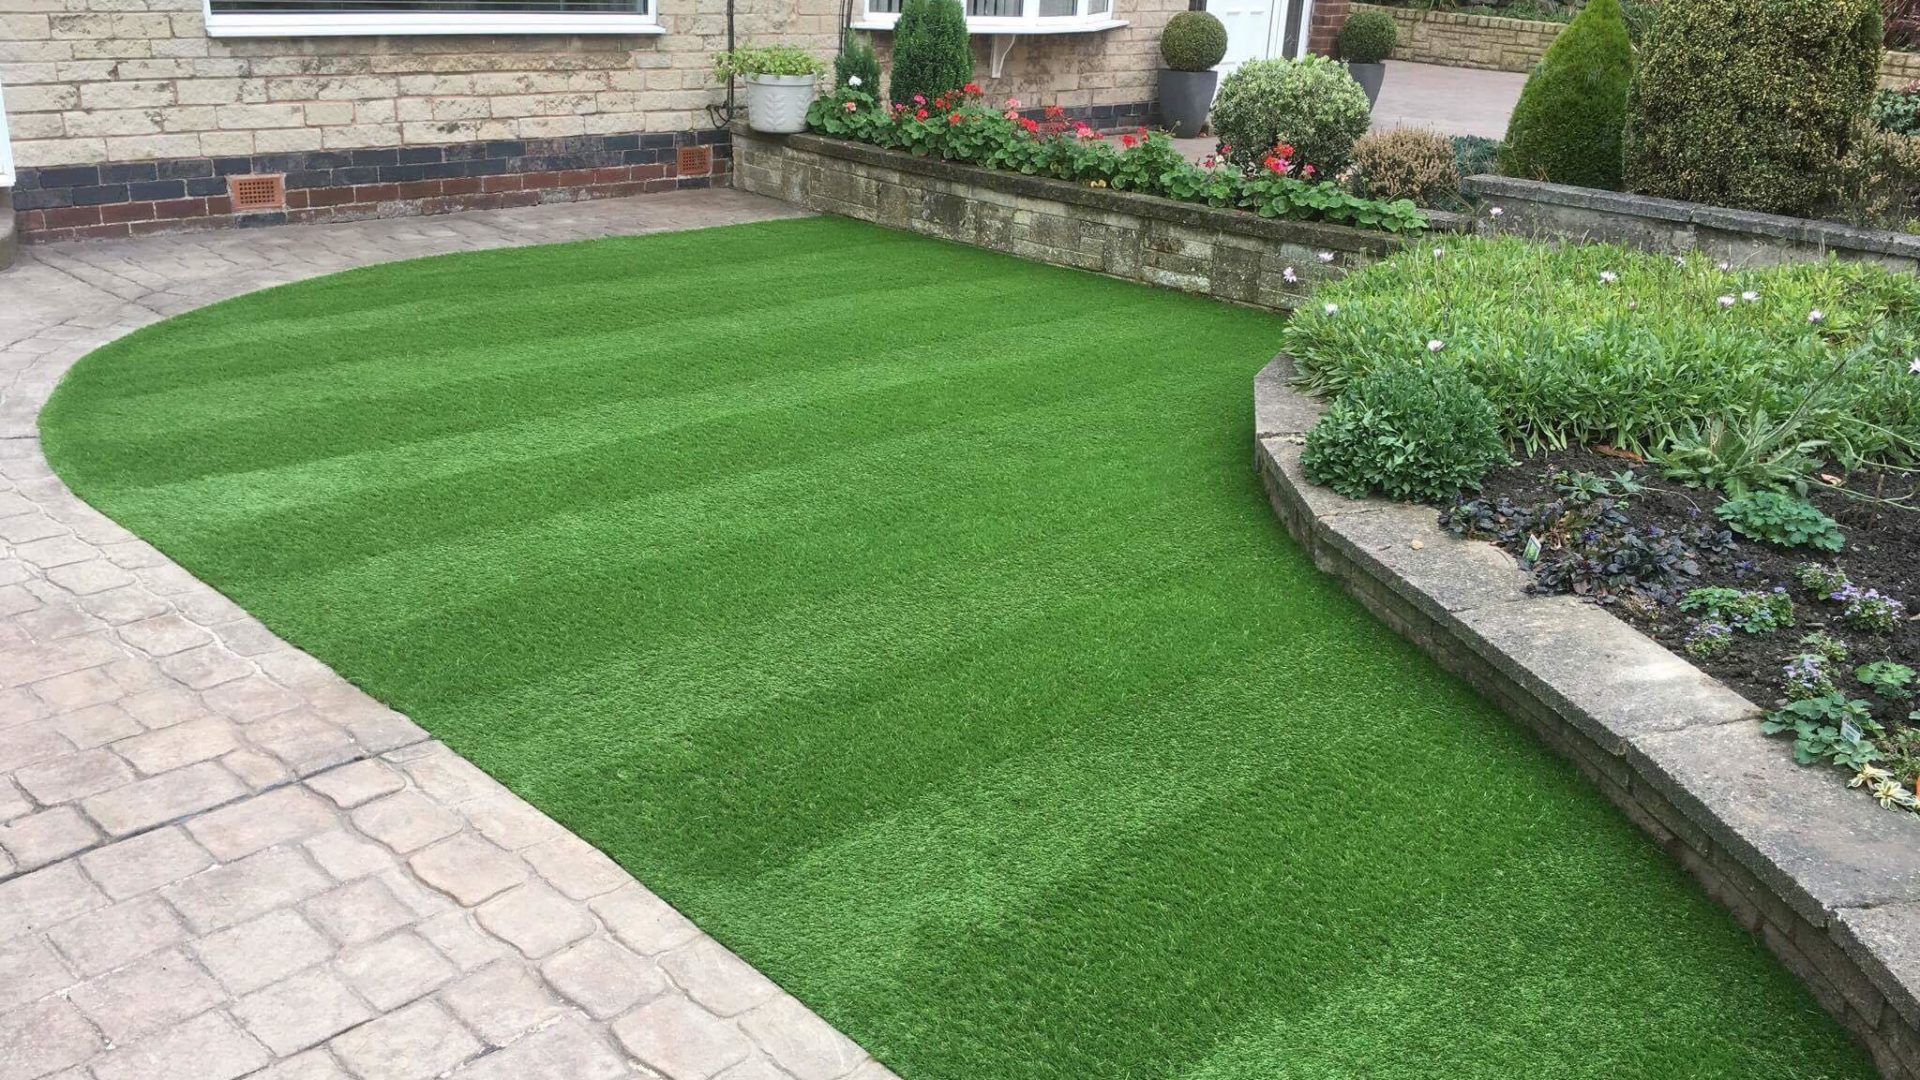 Easy Grass UK – Artificial Grass Installers in Chesterfield